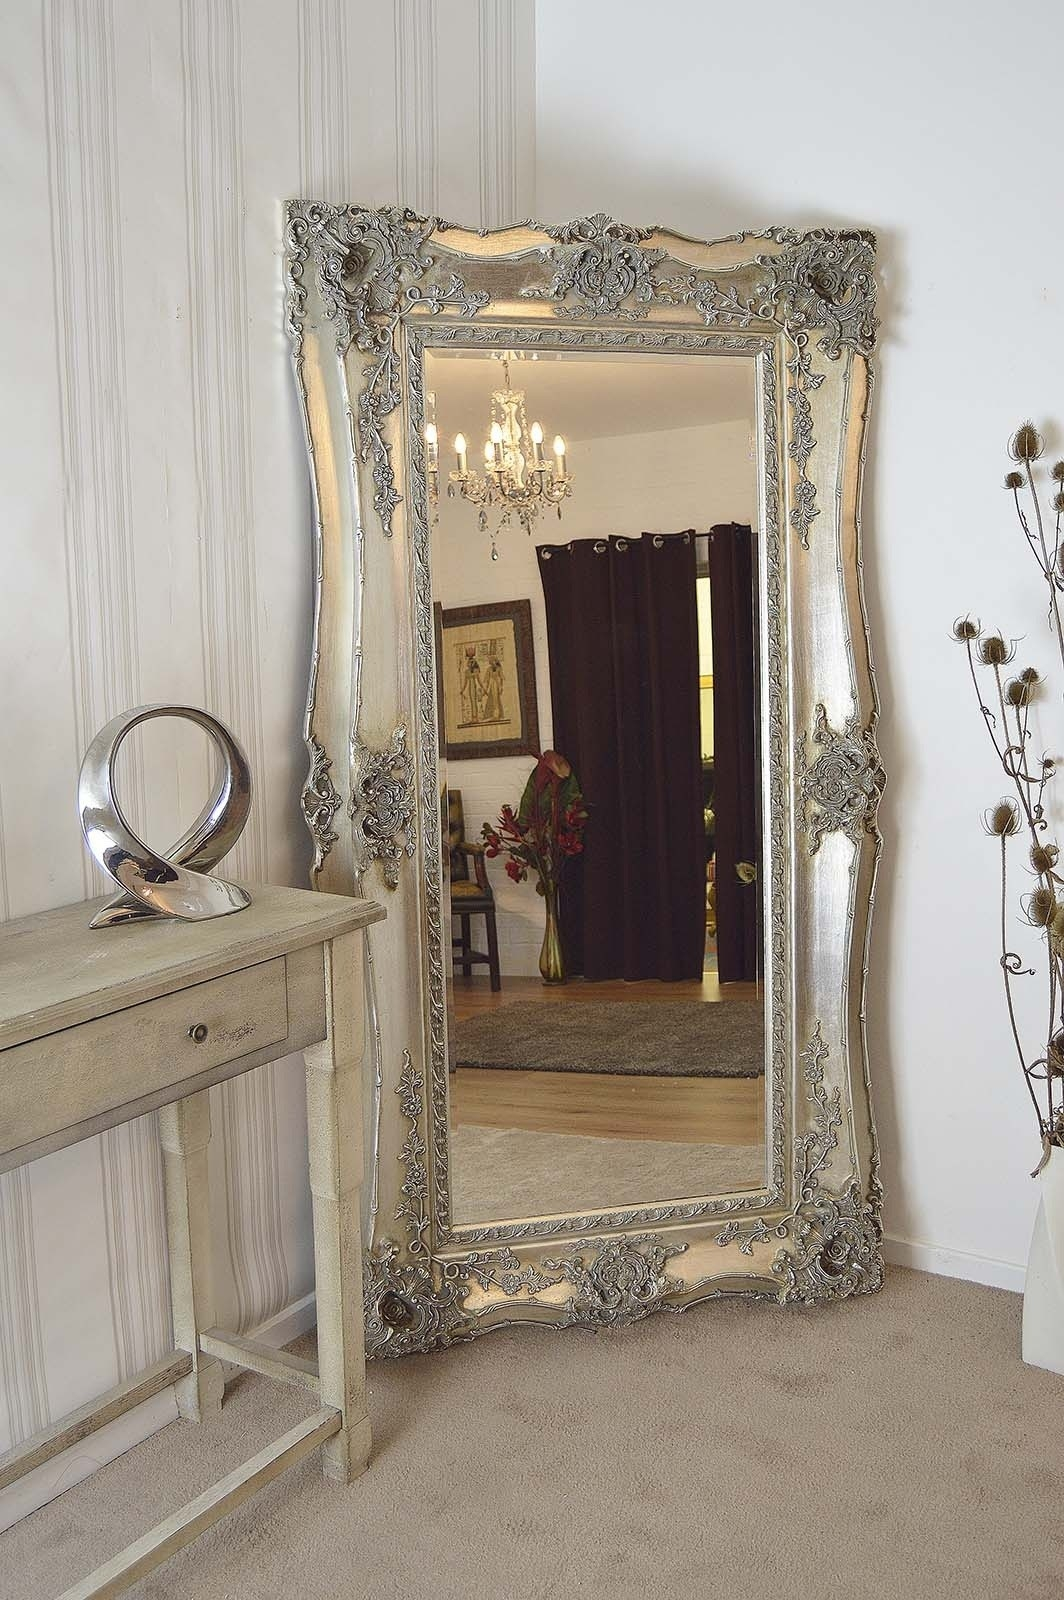 Ornate Full Length Wall Mirror Mirror Design Ideas For Large Ornate Mirrors For Wall (Image 11 of 15)